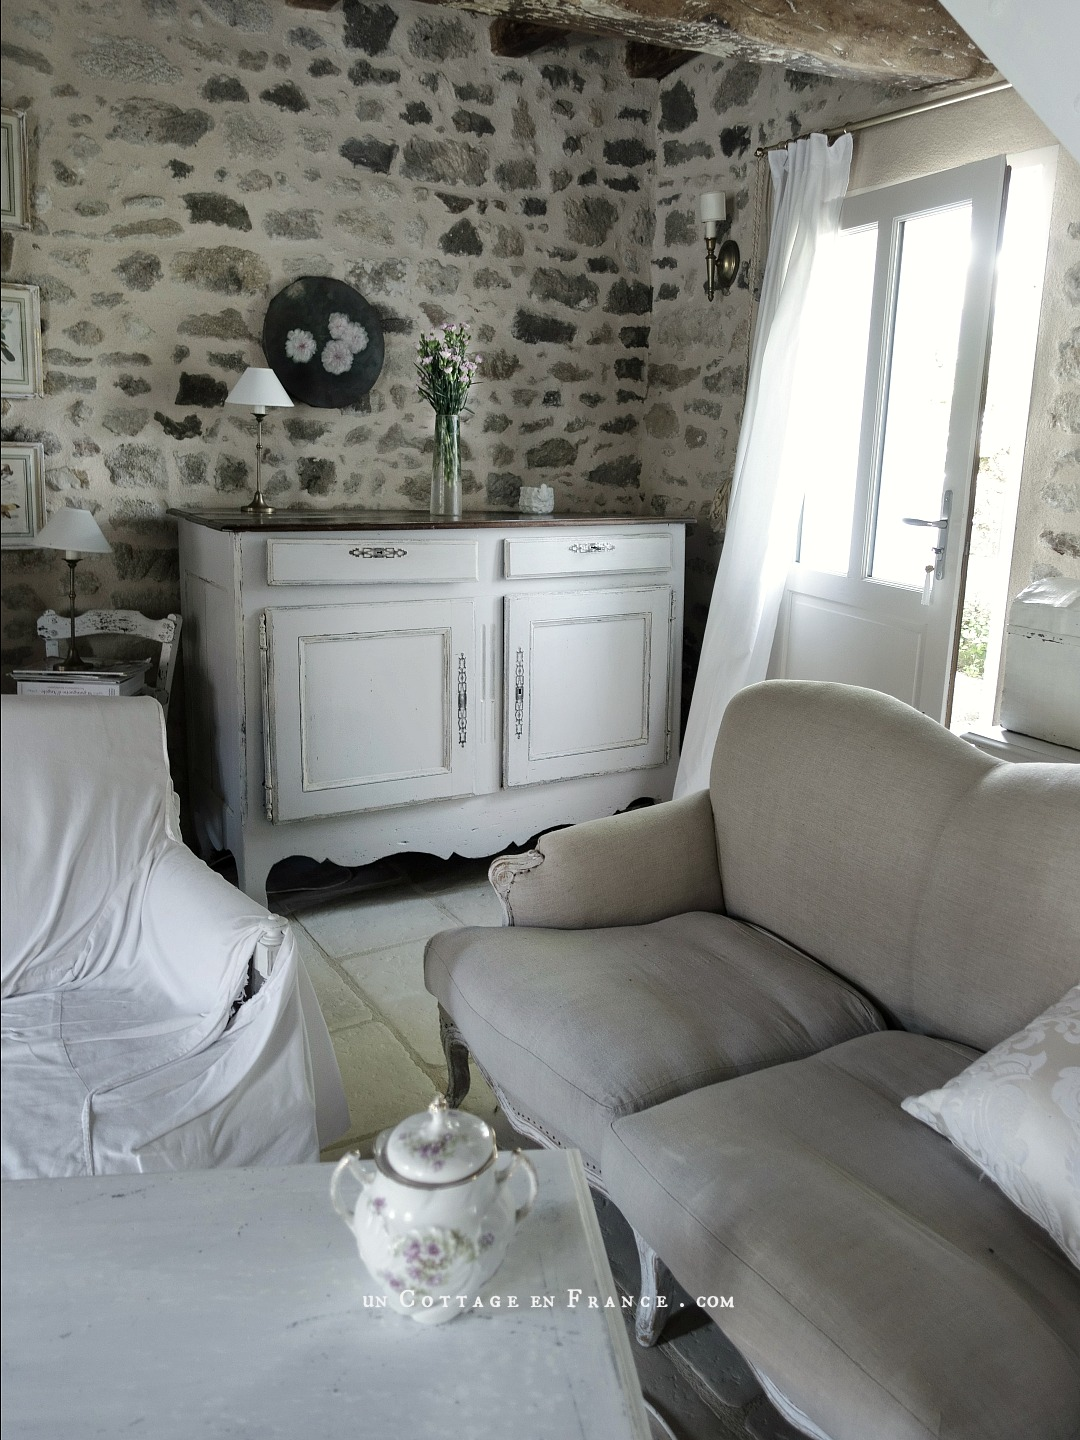 Relooking campagne chic du buffet régional (The regional sideboard country chic makeover)